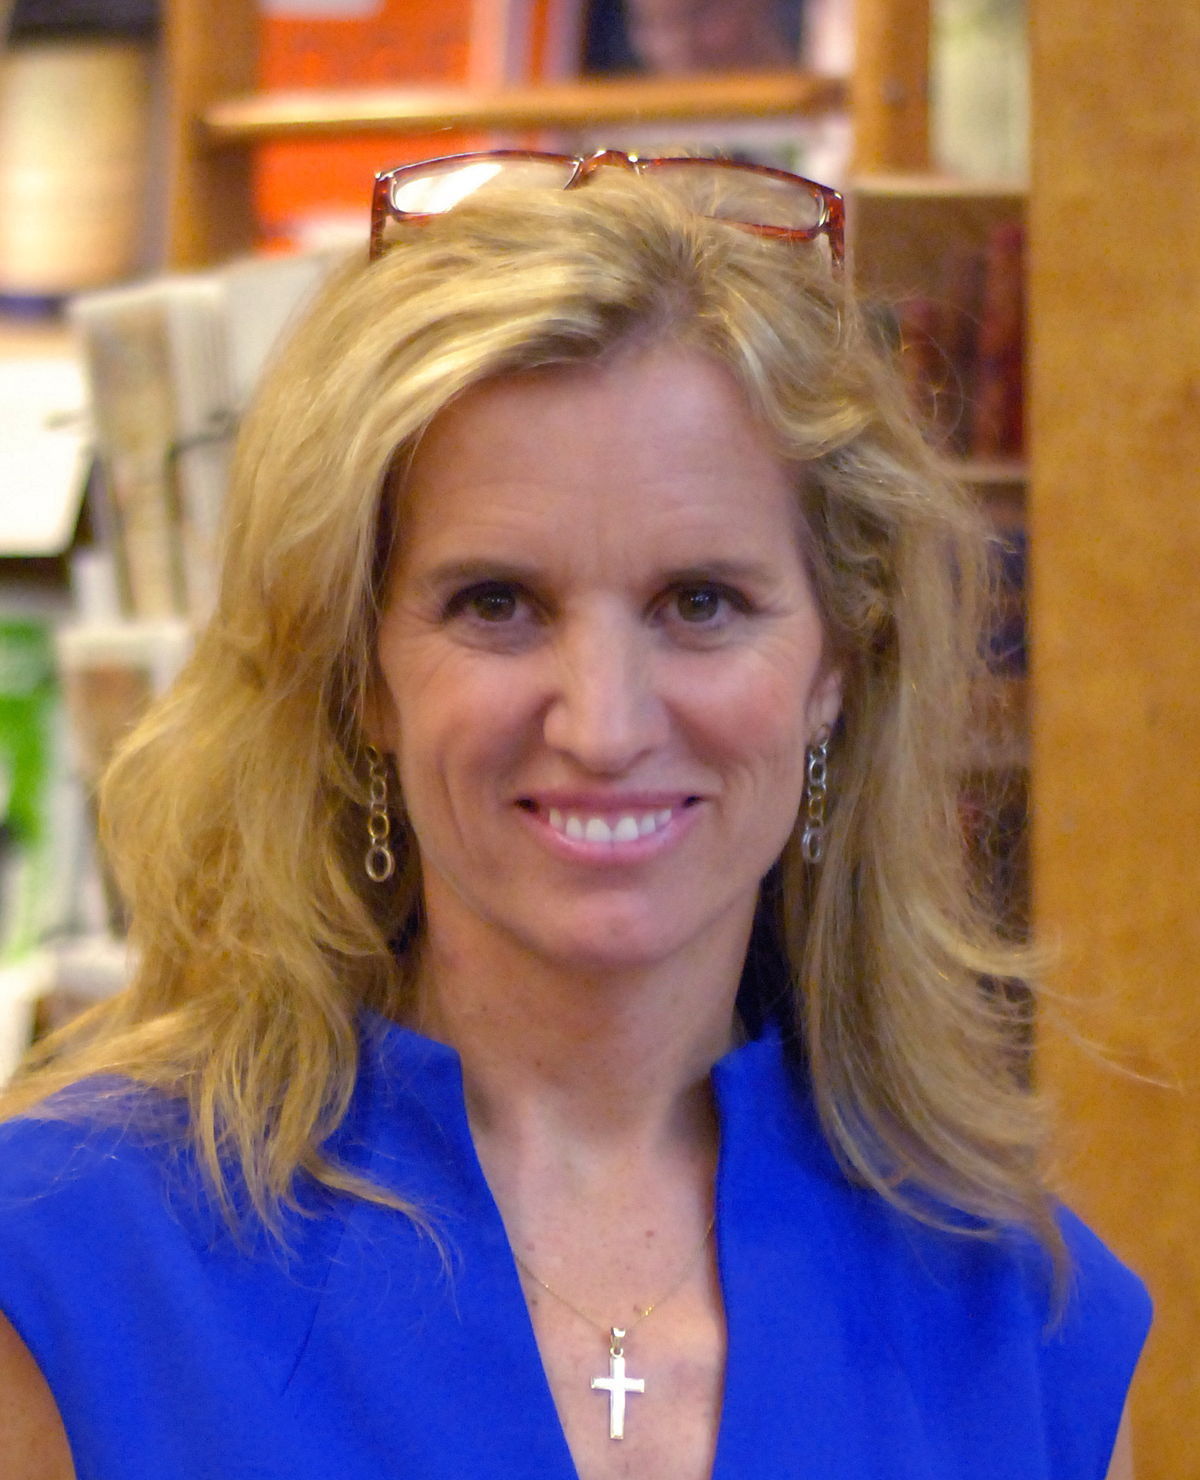 mary kerry kennedy � wikip233dia